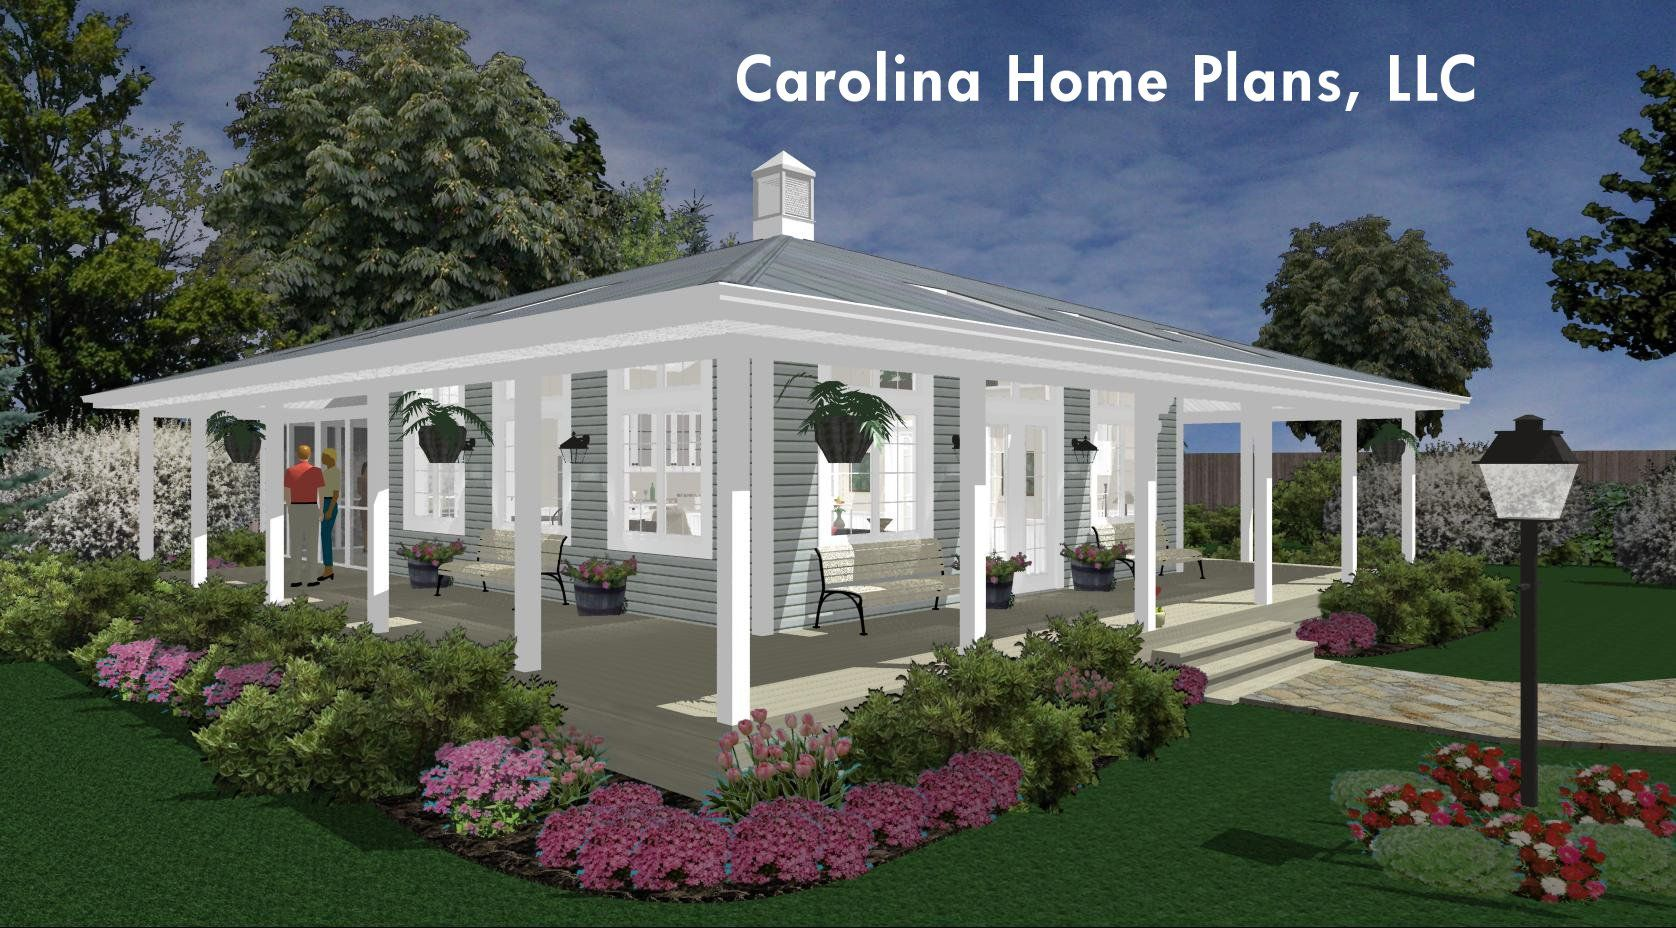 HOUSE PLANS WITH PORCHES | House Plans By Category | Porch house plans, Country  cottage house plans, House plans